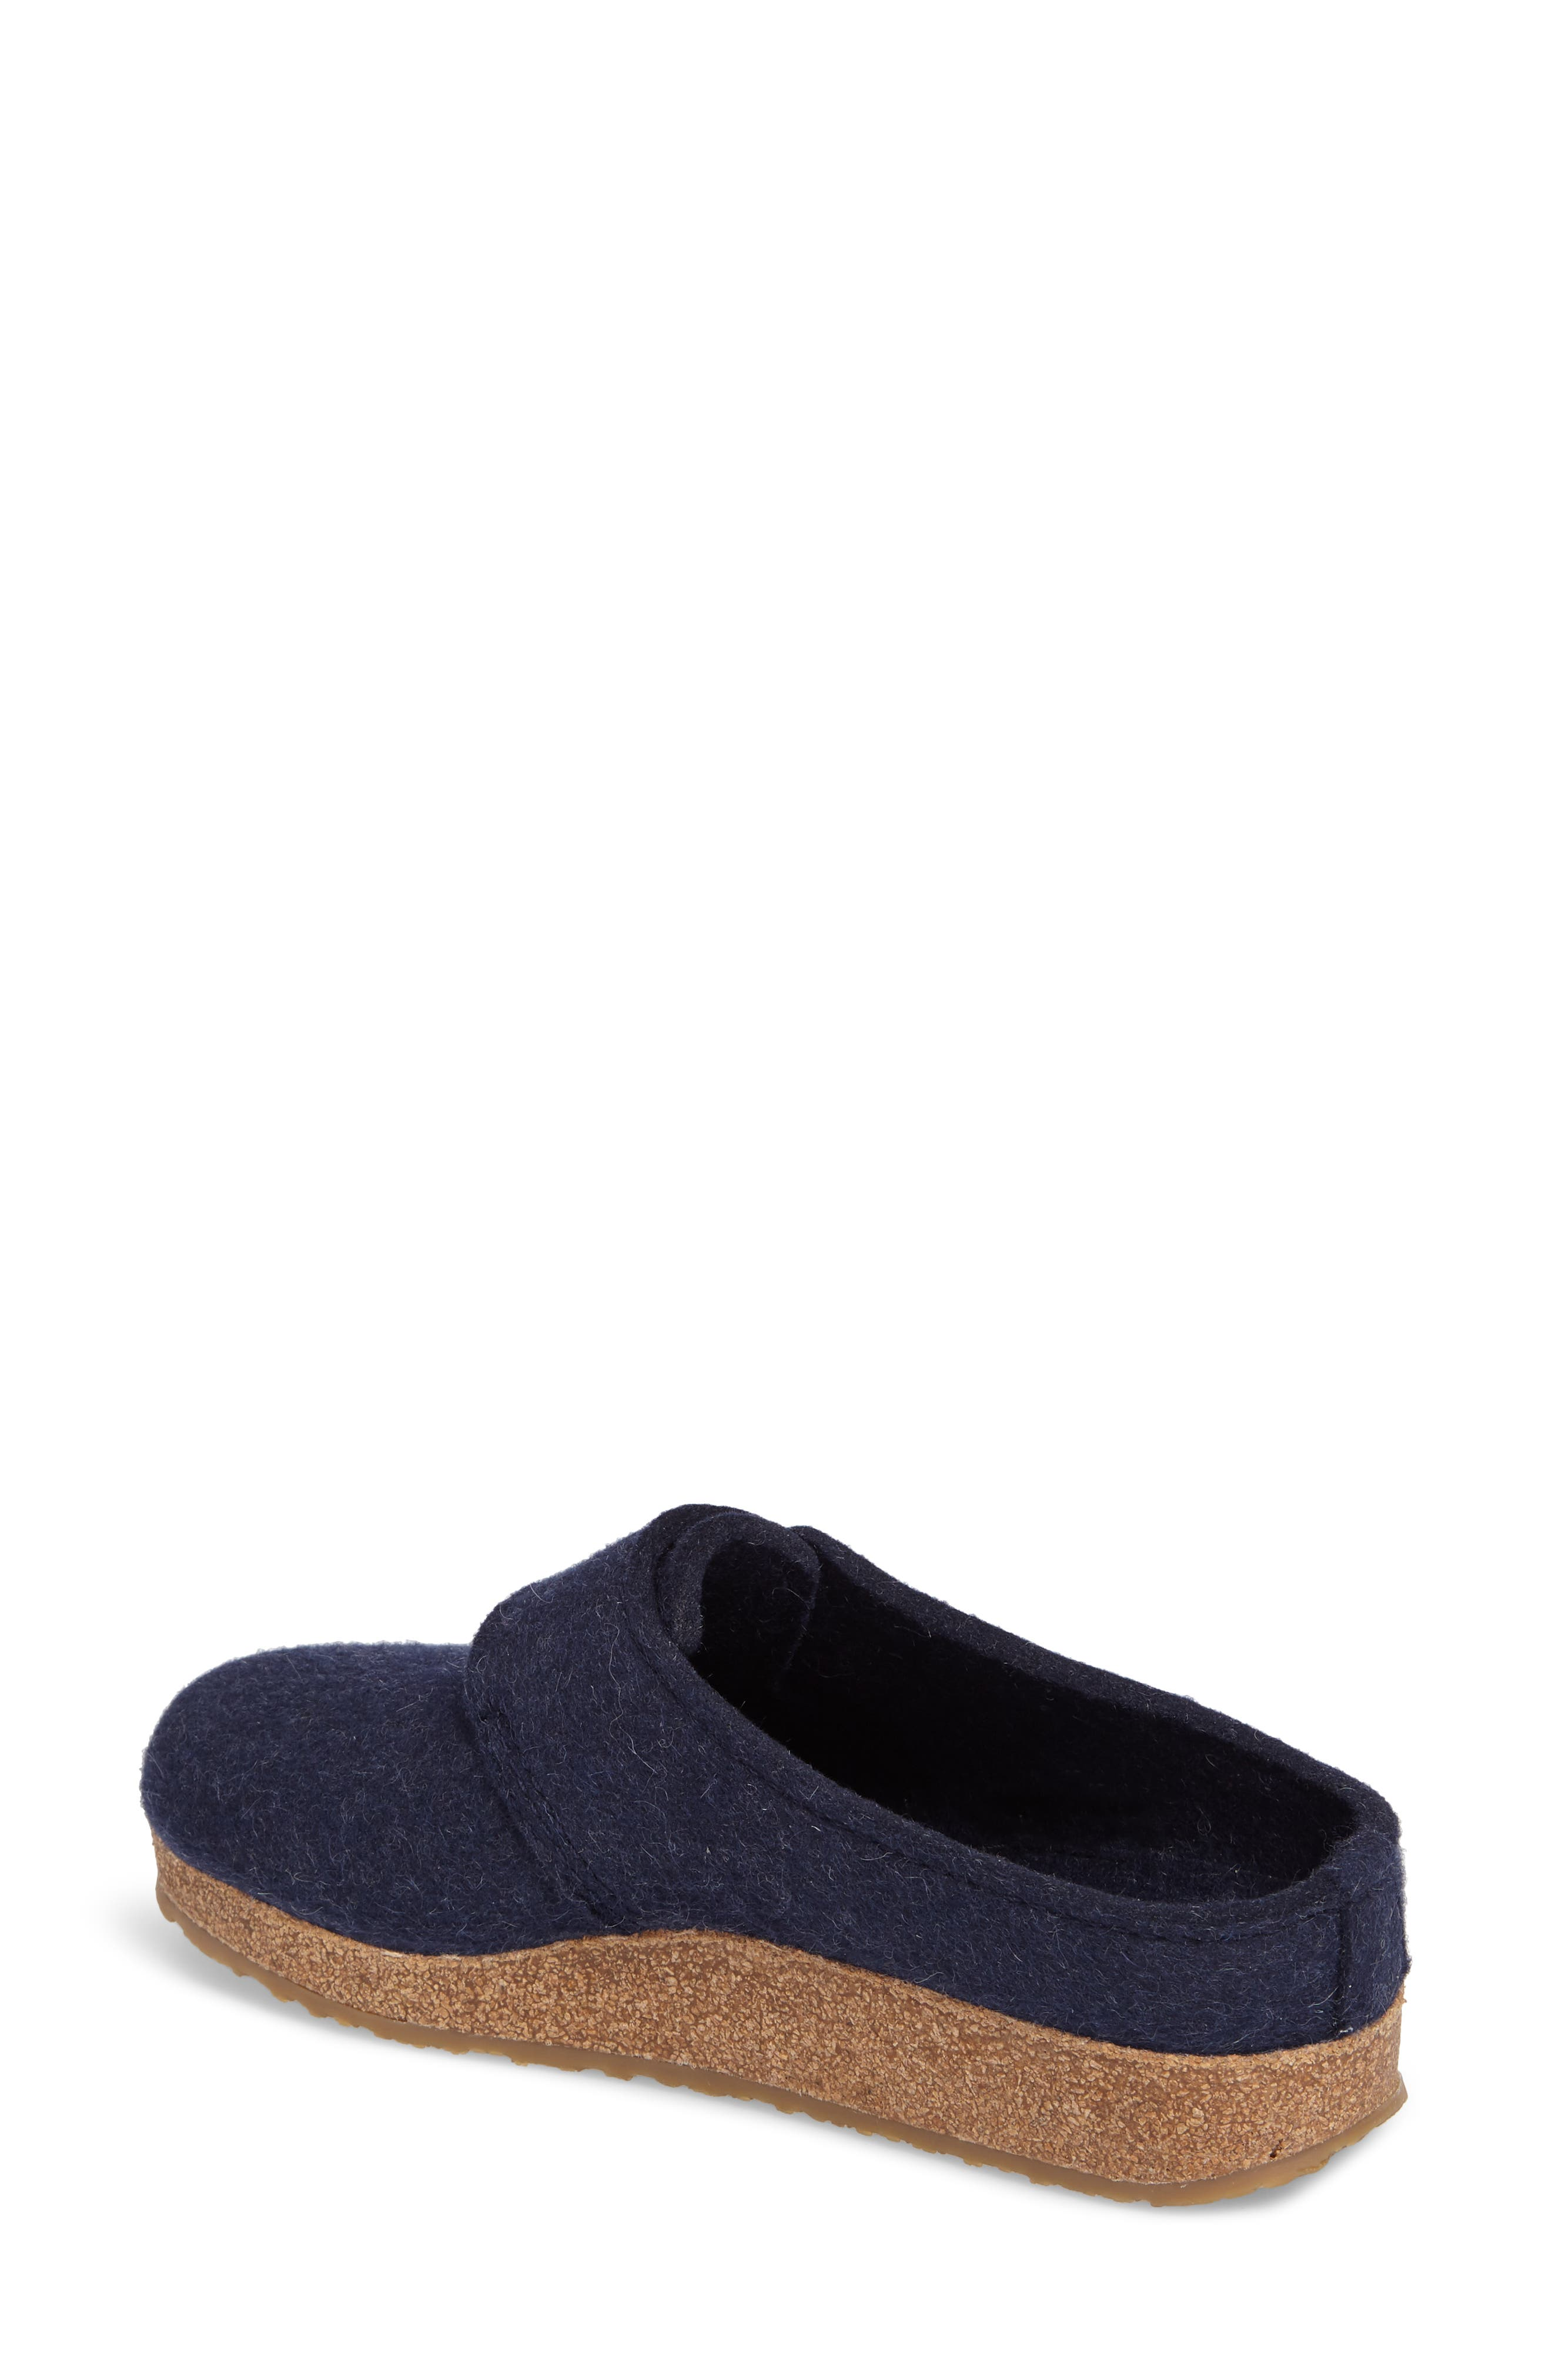 Grizzly Journey Clog Slipper,                             Alternate thumbnail 4, color,